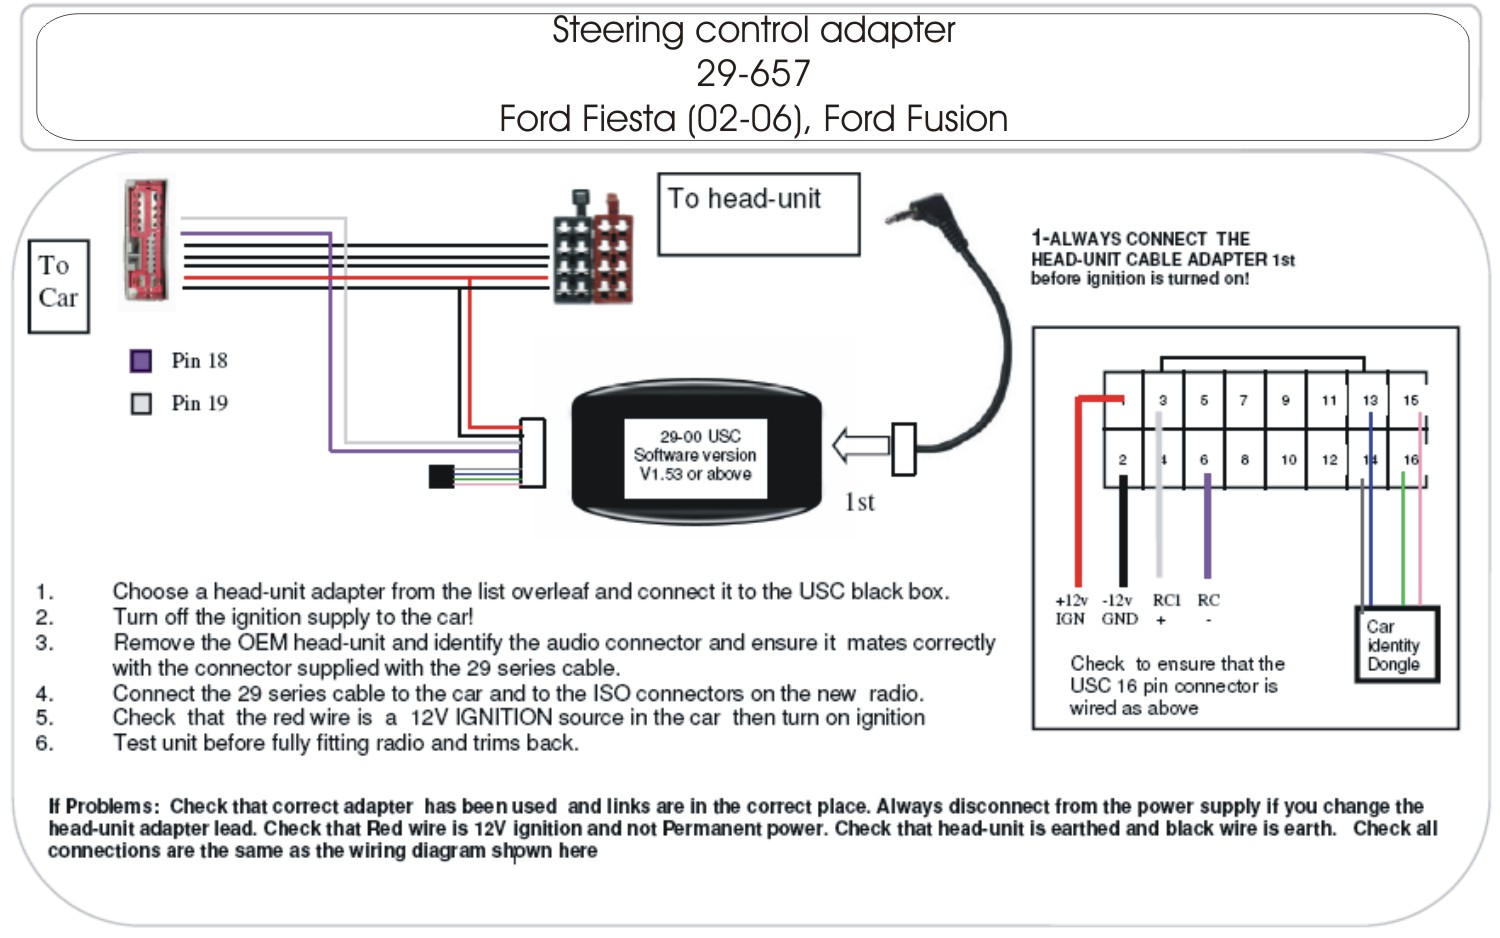 2012 Honda Civic Fuse Box Replacement On Ford Fiesta 2006 1998 Suzuki Swift Explained Wiring Diagrams 2000 Under Hood